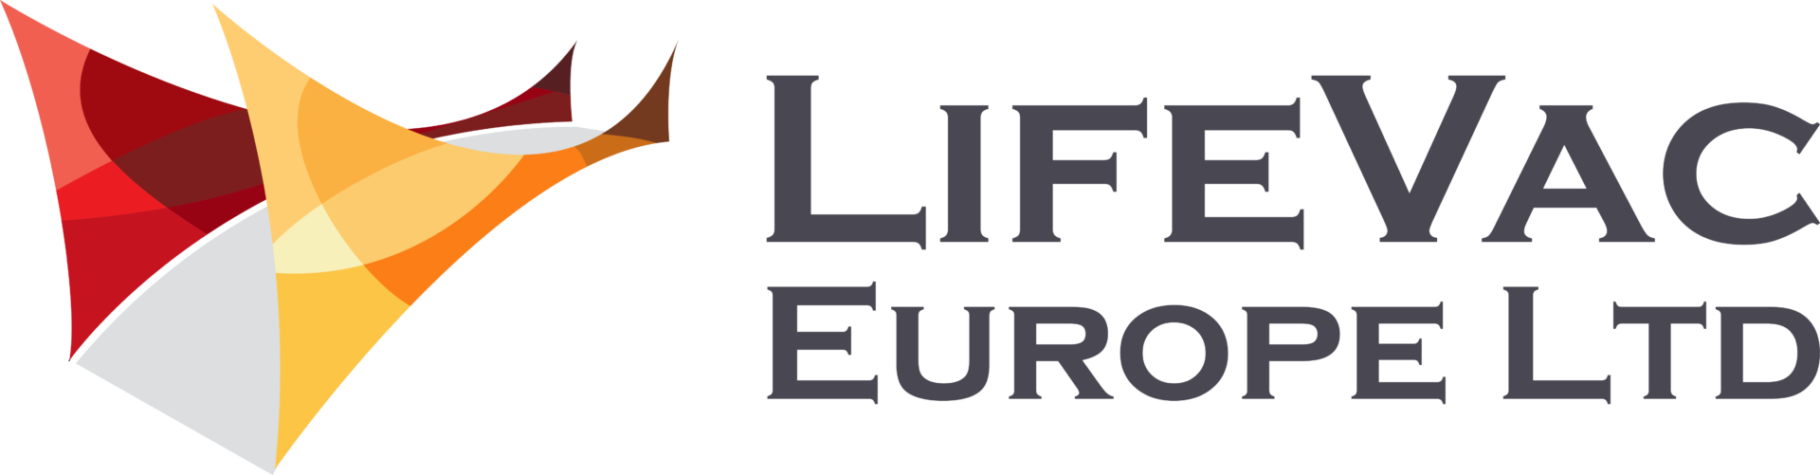 LifeVac Europe in large bold grey text and the red and yellow company logo